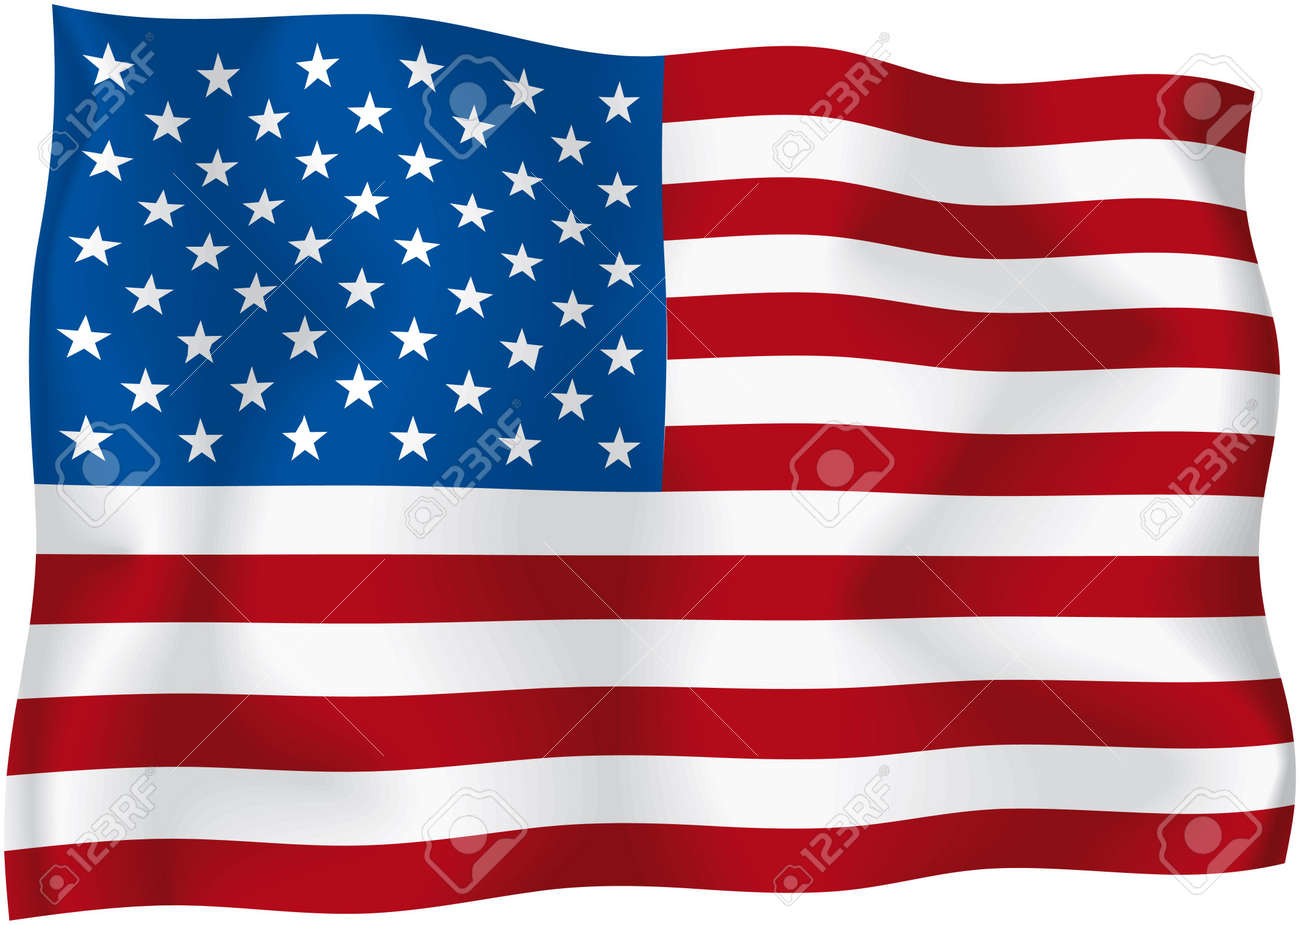 USA - American flag - American wavy flag isolated on white background Stock Photo - 6568407